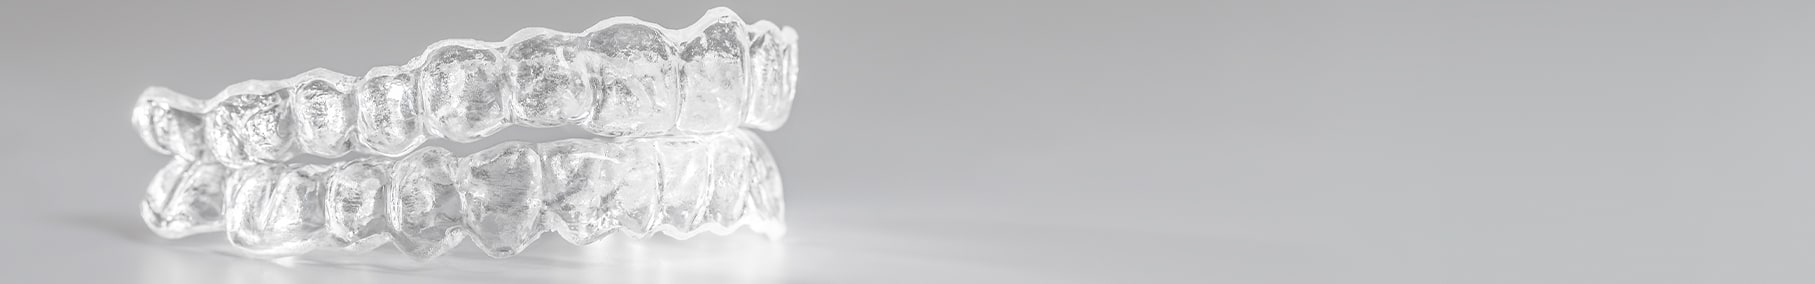 Clear Aligners | Etobicoke Dentist | West Mall Dental Group